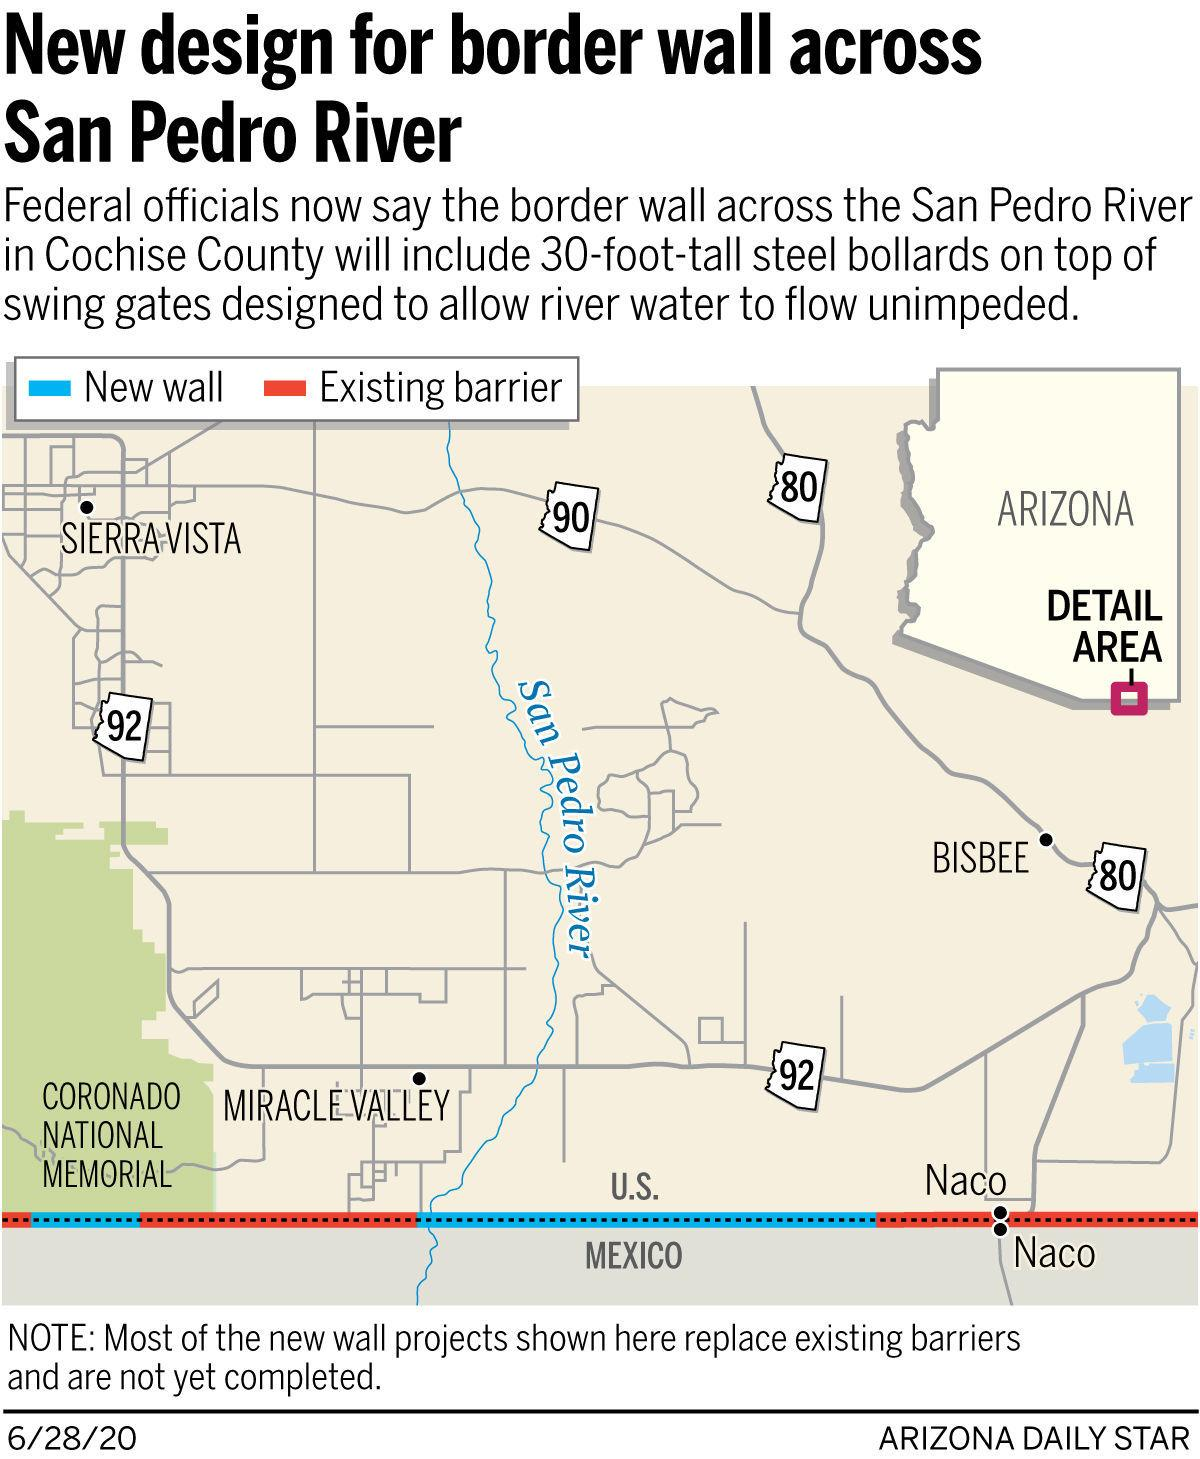 New design for border wall across San Pedro River